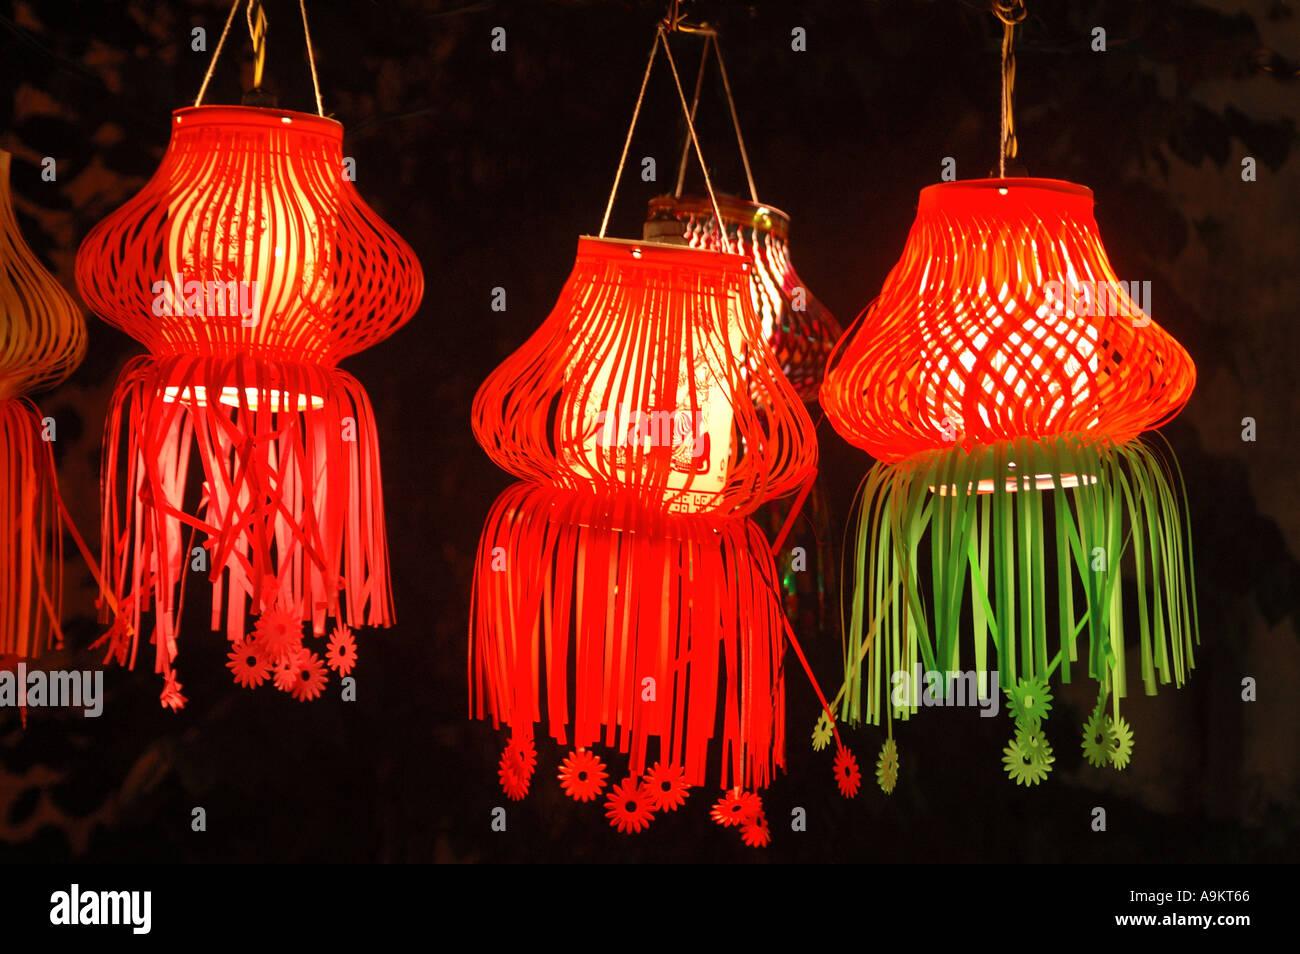 Diwali Indian Festival Of Lights Christmas Colourful Paper Lamps Red Lanterns Kandeel Three Pieces Hanging For Sale India Asia